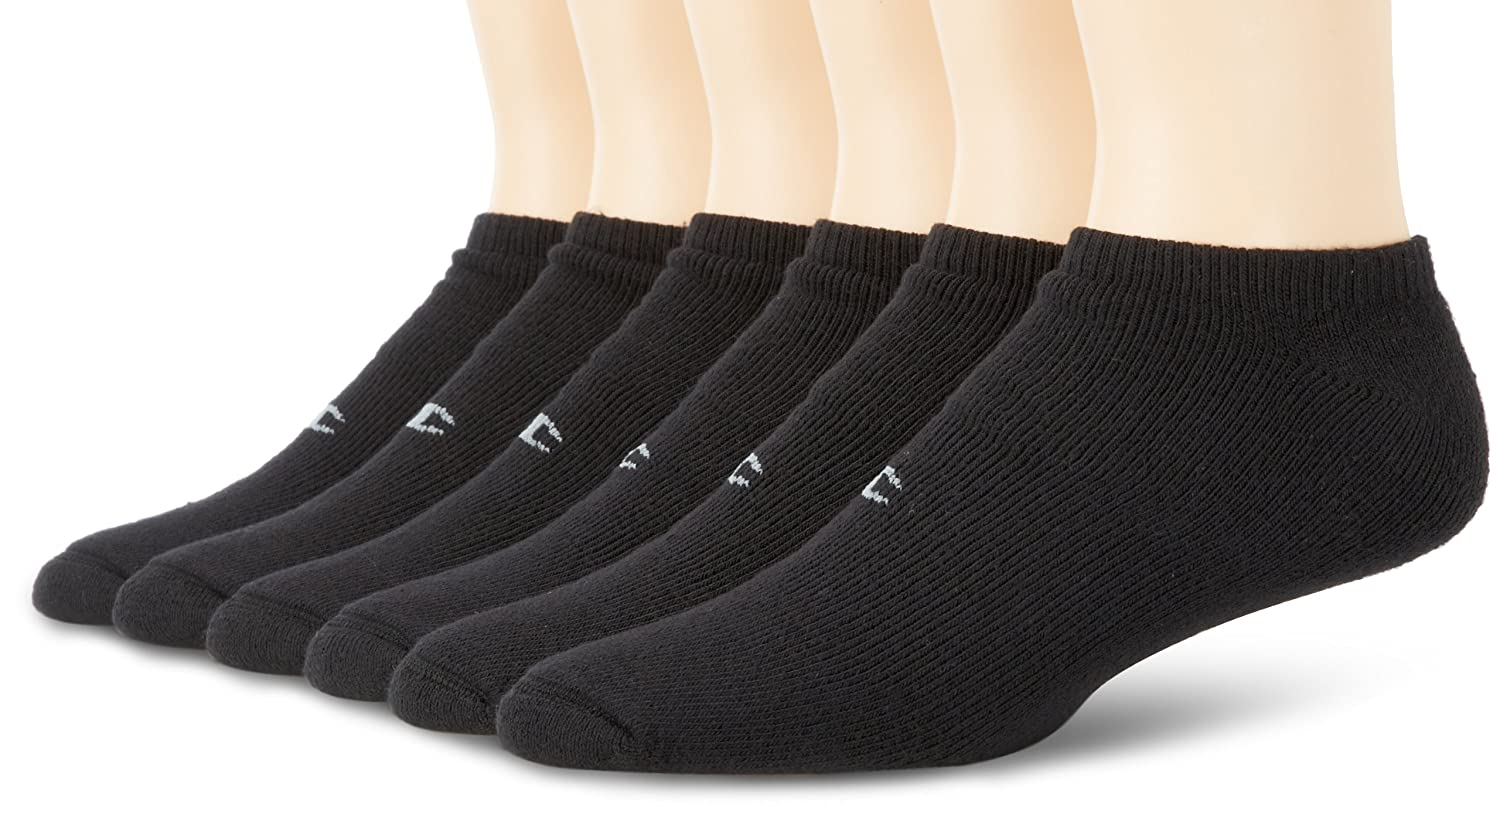 e3f31ced76b79 Champion Men s Double Dry Performance No-Show Socks 6-Pack at Amazon Men s  Clothing store